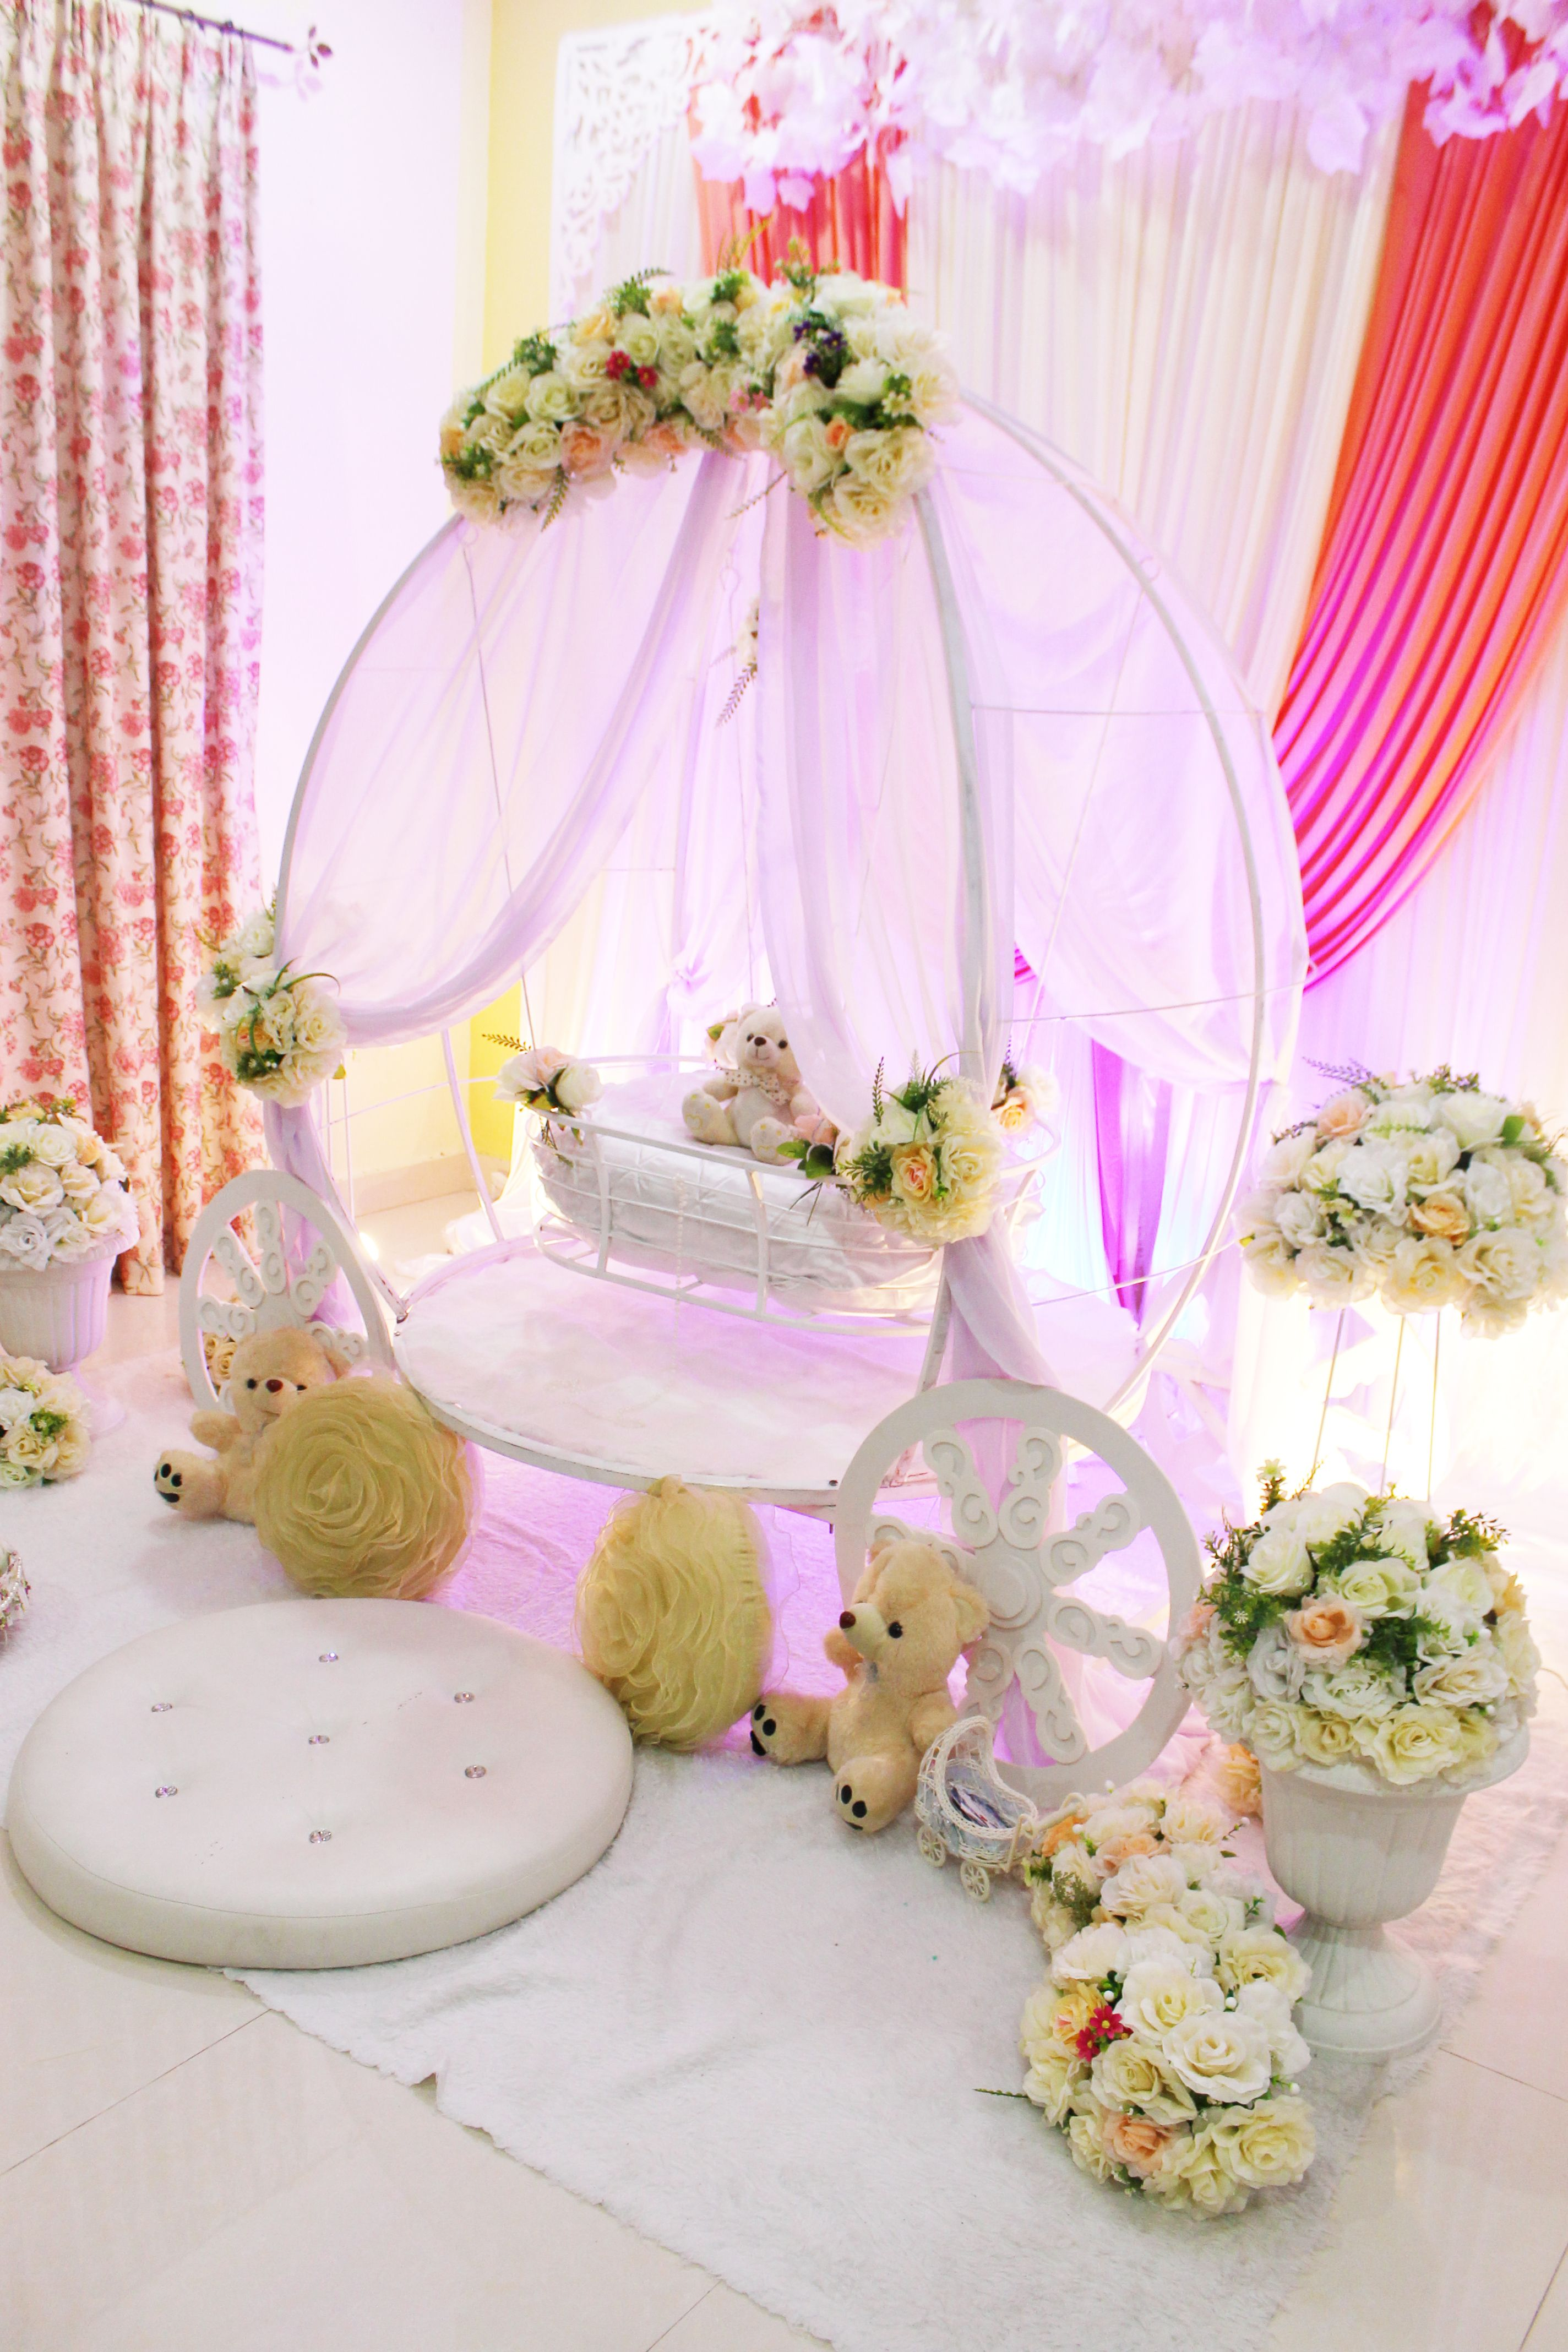 cradle #ceremony | festivals of love | pinterest | naming ceremony